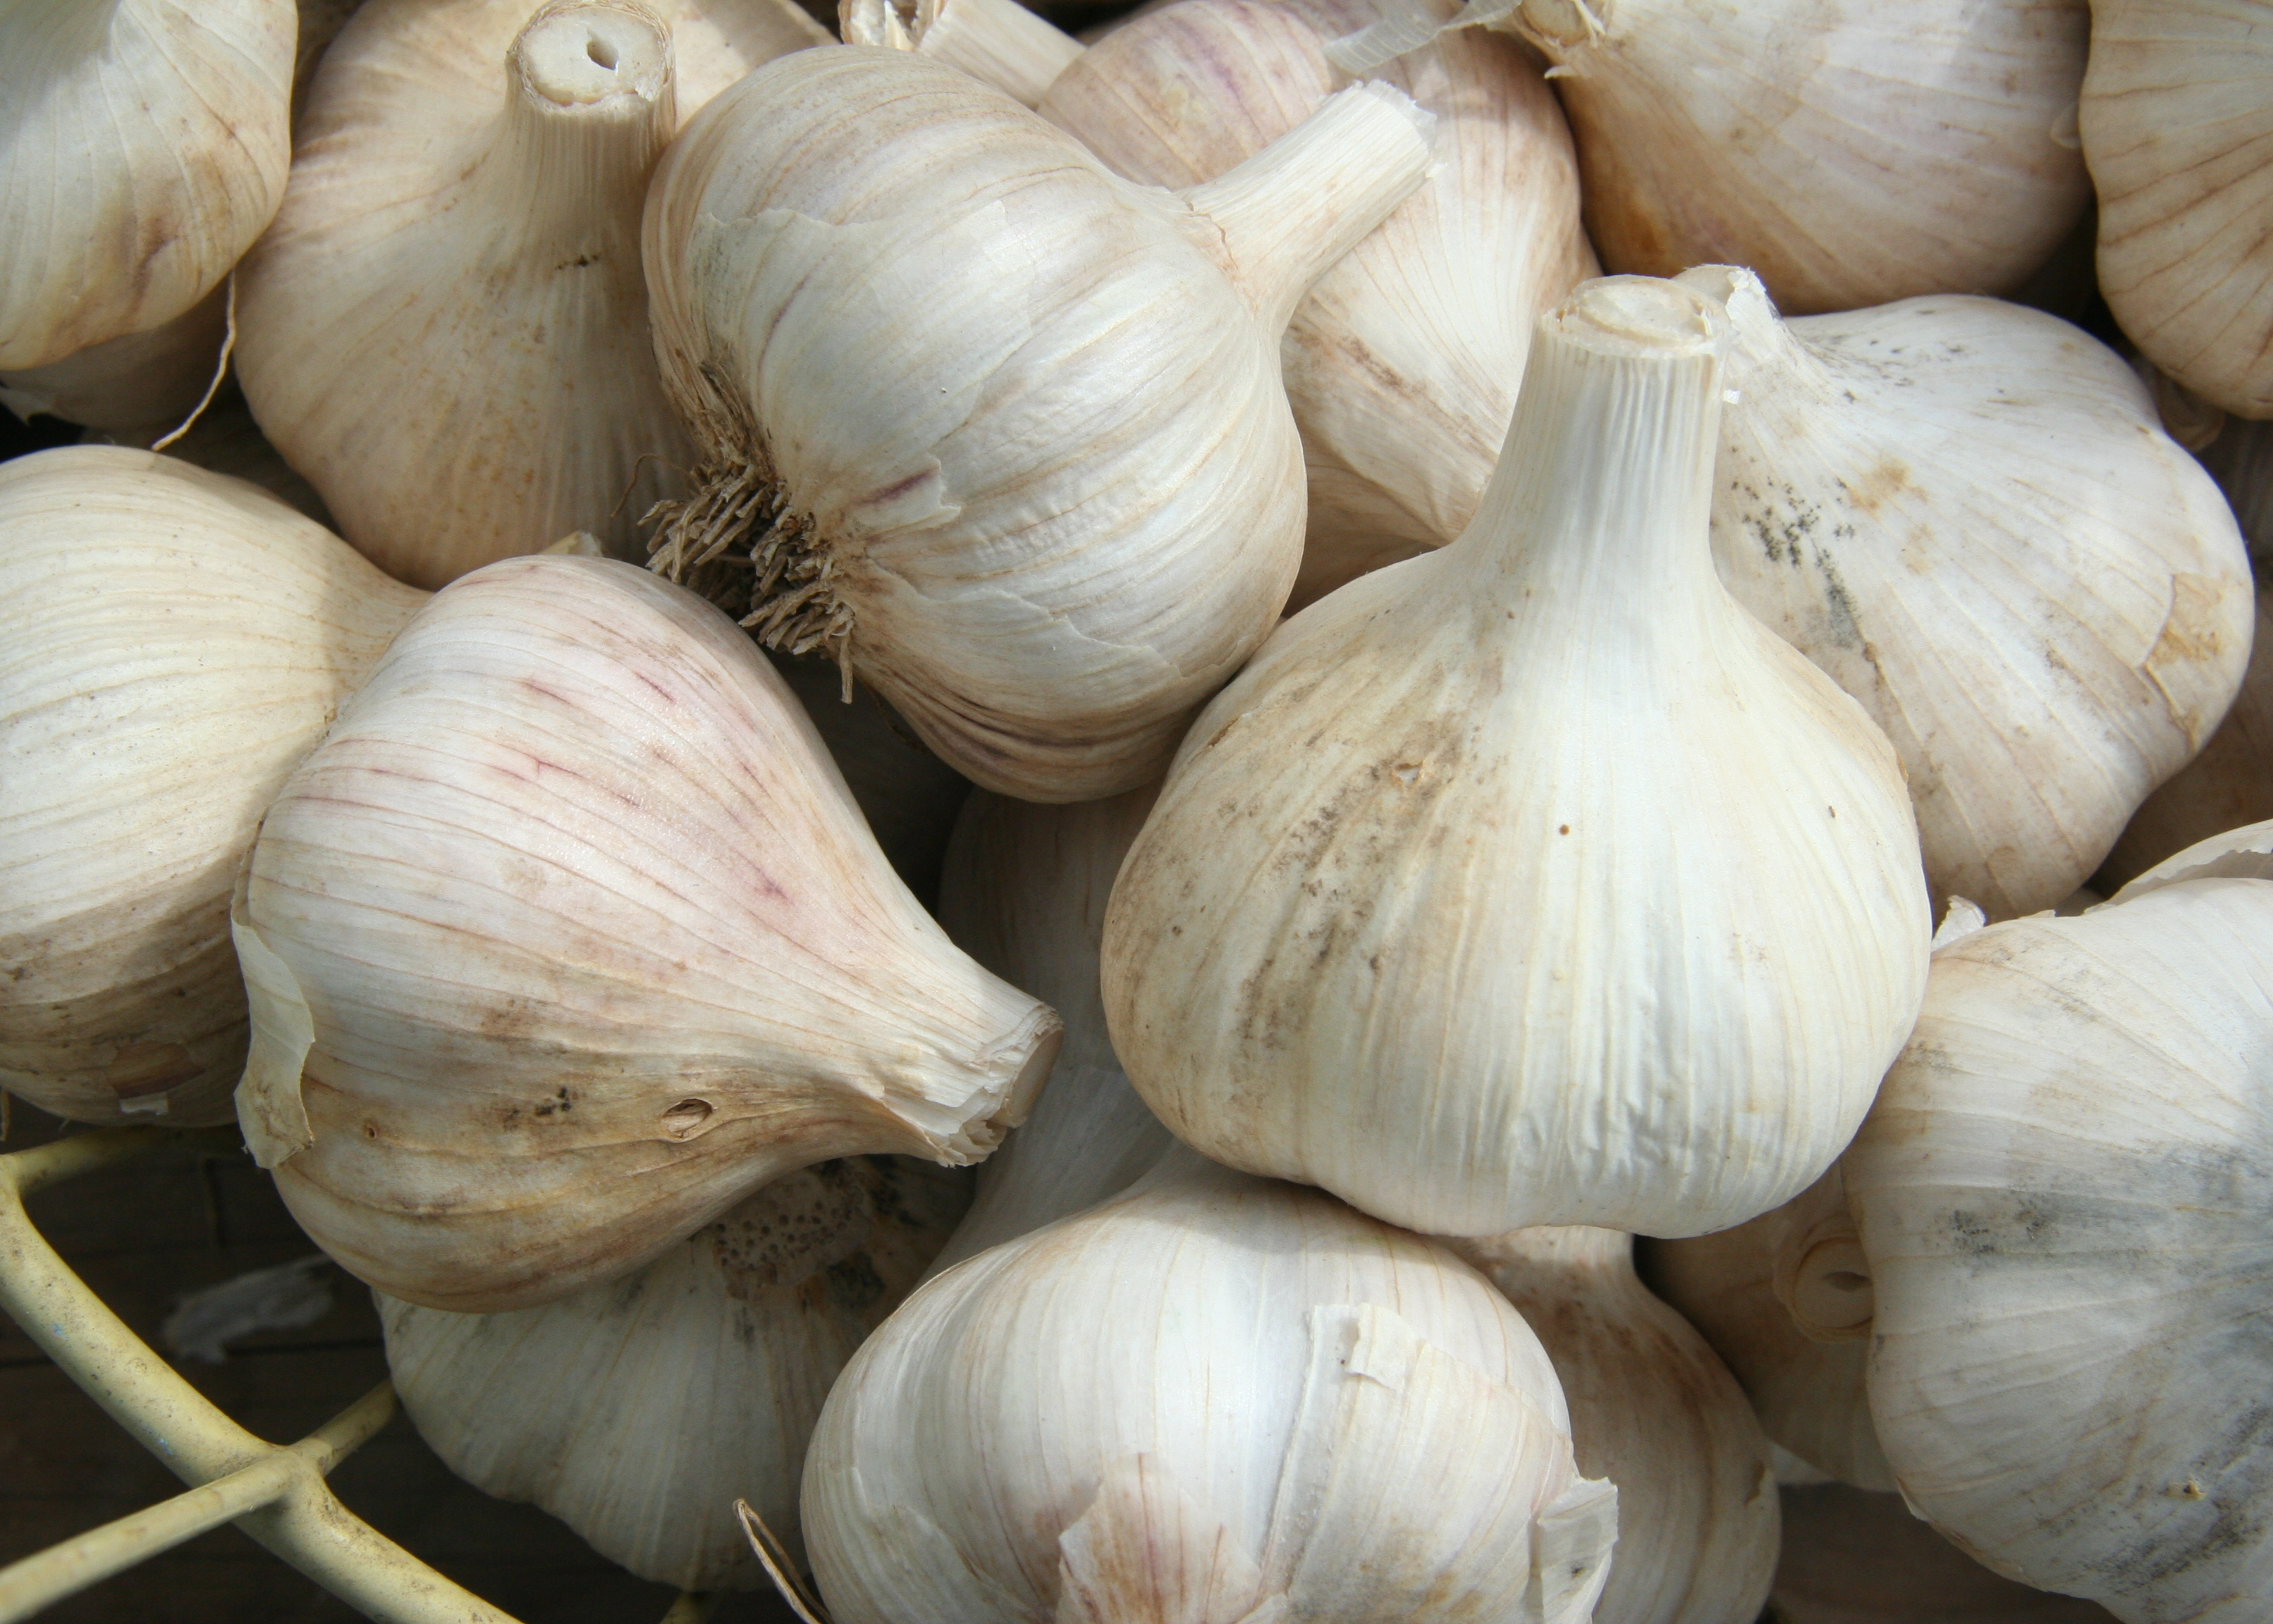 http://upload.wikimedia.org/wikipedia/commons/e/e5/GarlicBasket.jpg